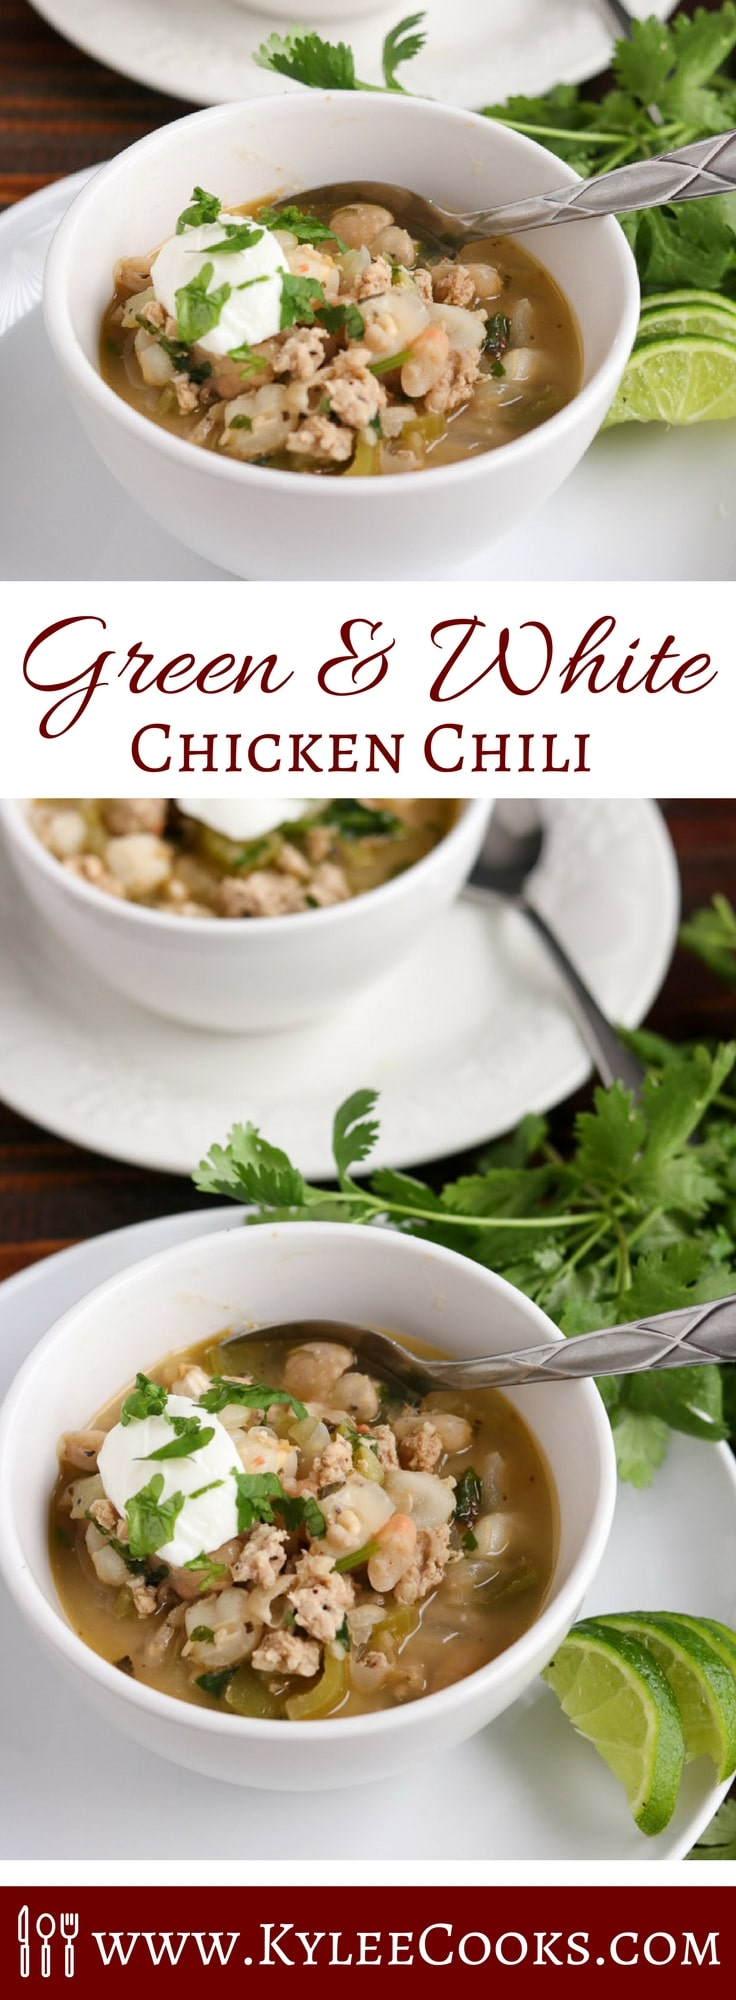 This low fat green and white chicken chili has all the hallmarks of yum! Very easy to make, dinner can be ready in 30 mins! Make ahead and freeze for weeknights!